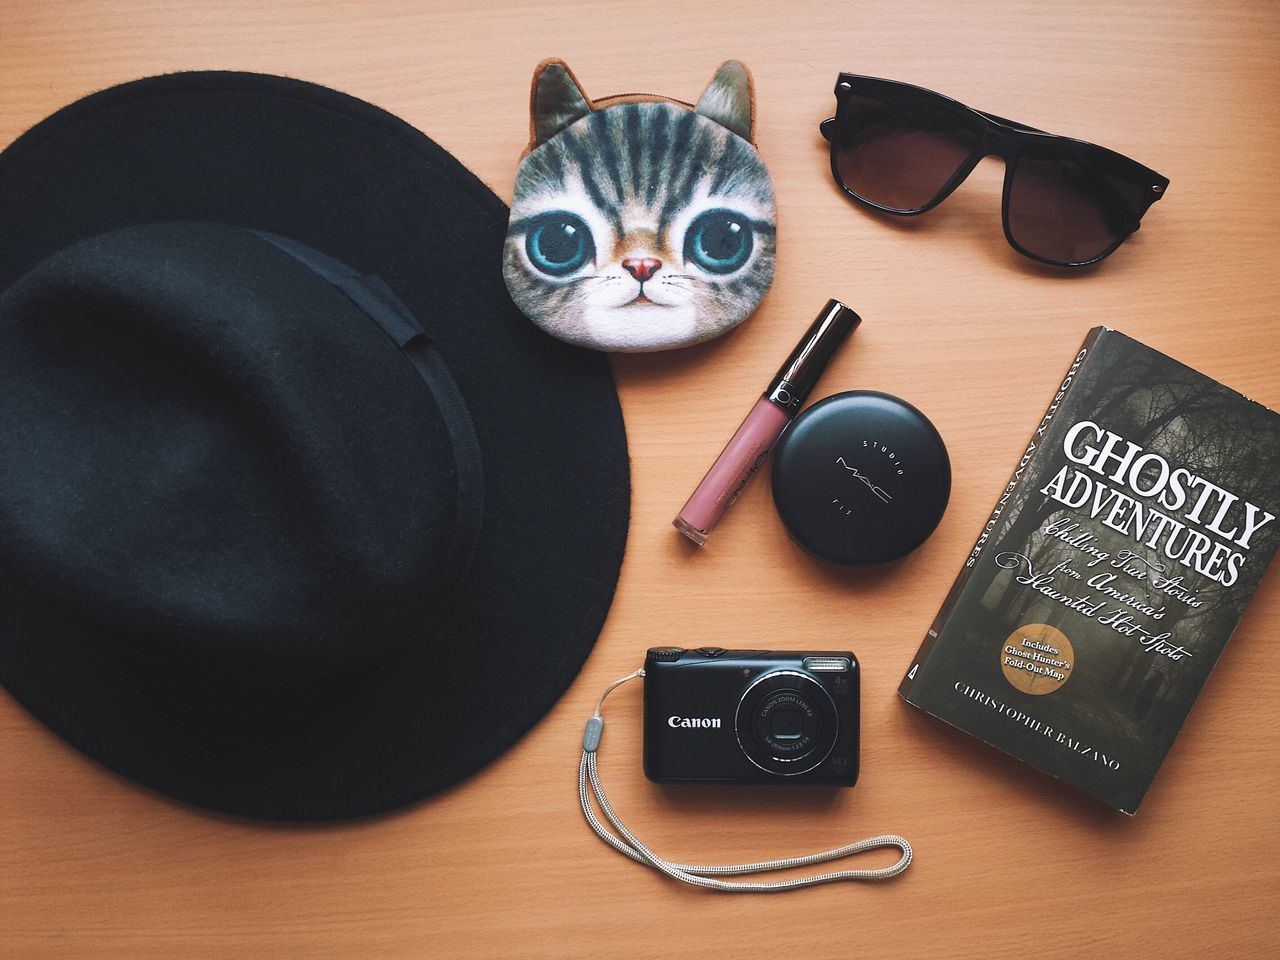 Ghostly adventures essentials Lieblingsteil My Favorite Things High Angle View Directly Above Flatlay Hat Fedora Hat Eyewear Shades Coin Purse Makeup Lipstick Fashion Accesories Camera Point And Shoot Book Indoors  Desk Mobile Photography Smartphone Photography VSCO Eyeemphoto